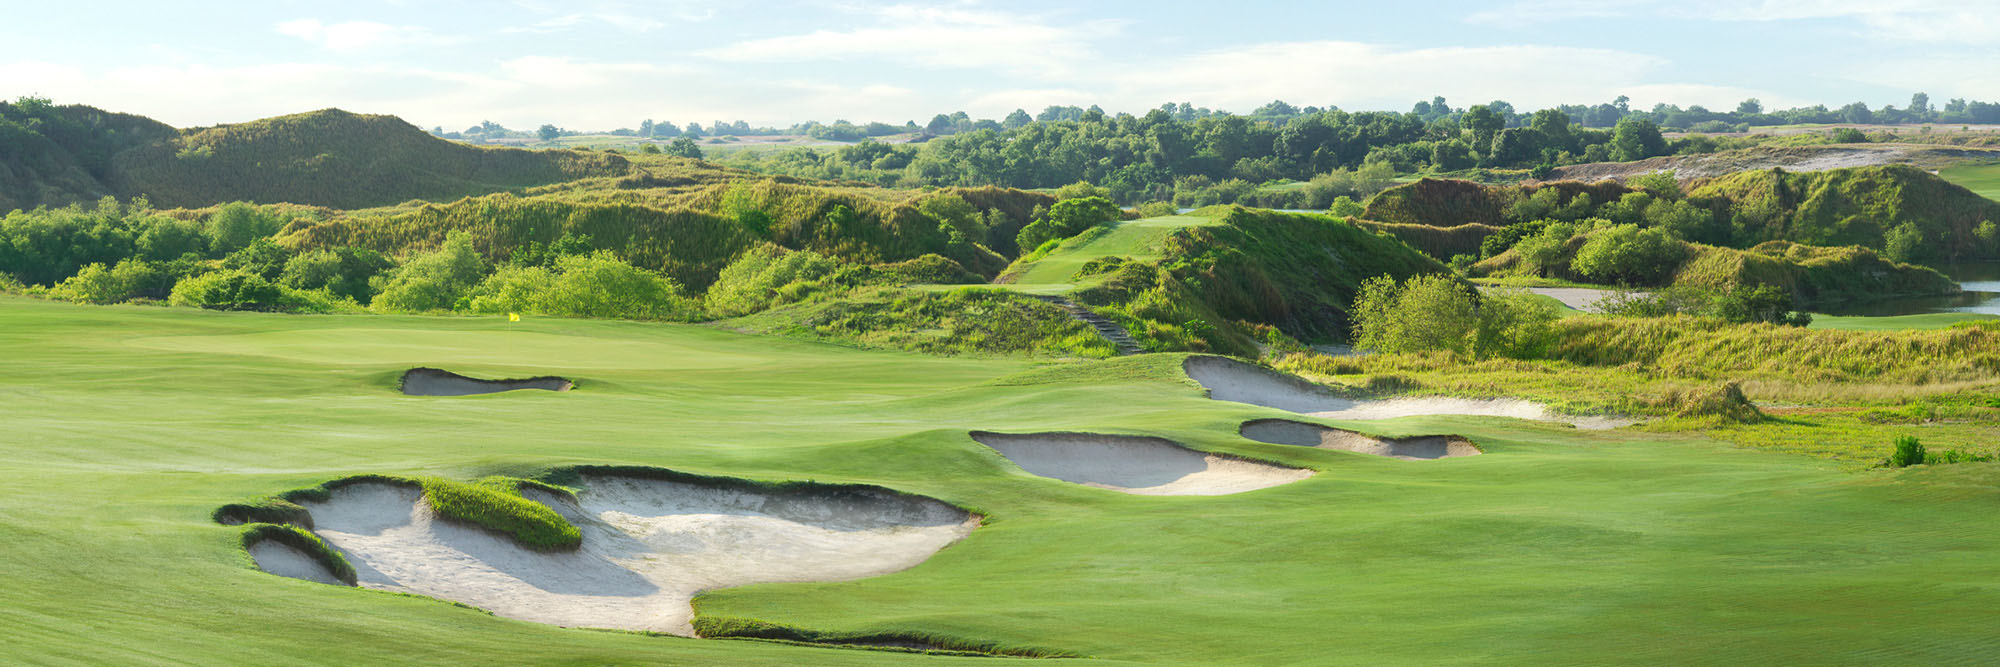 Golf Course Image - Streamsong Blue No. 18